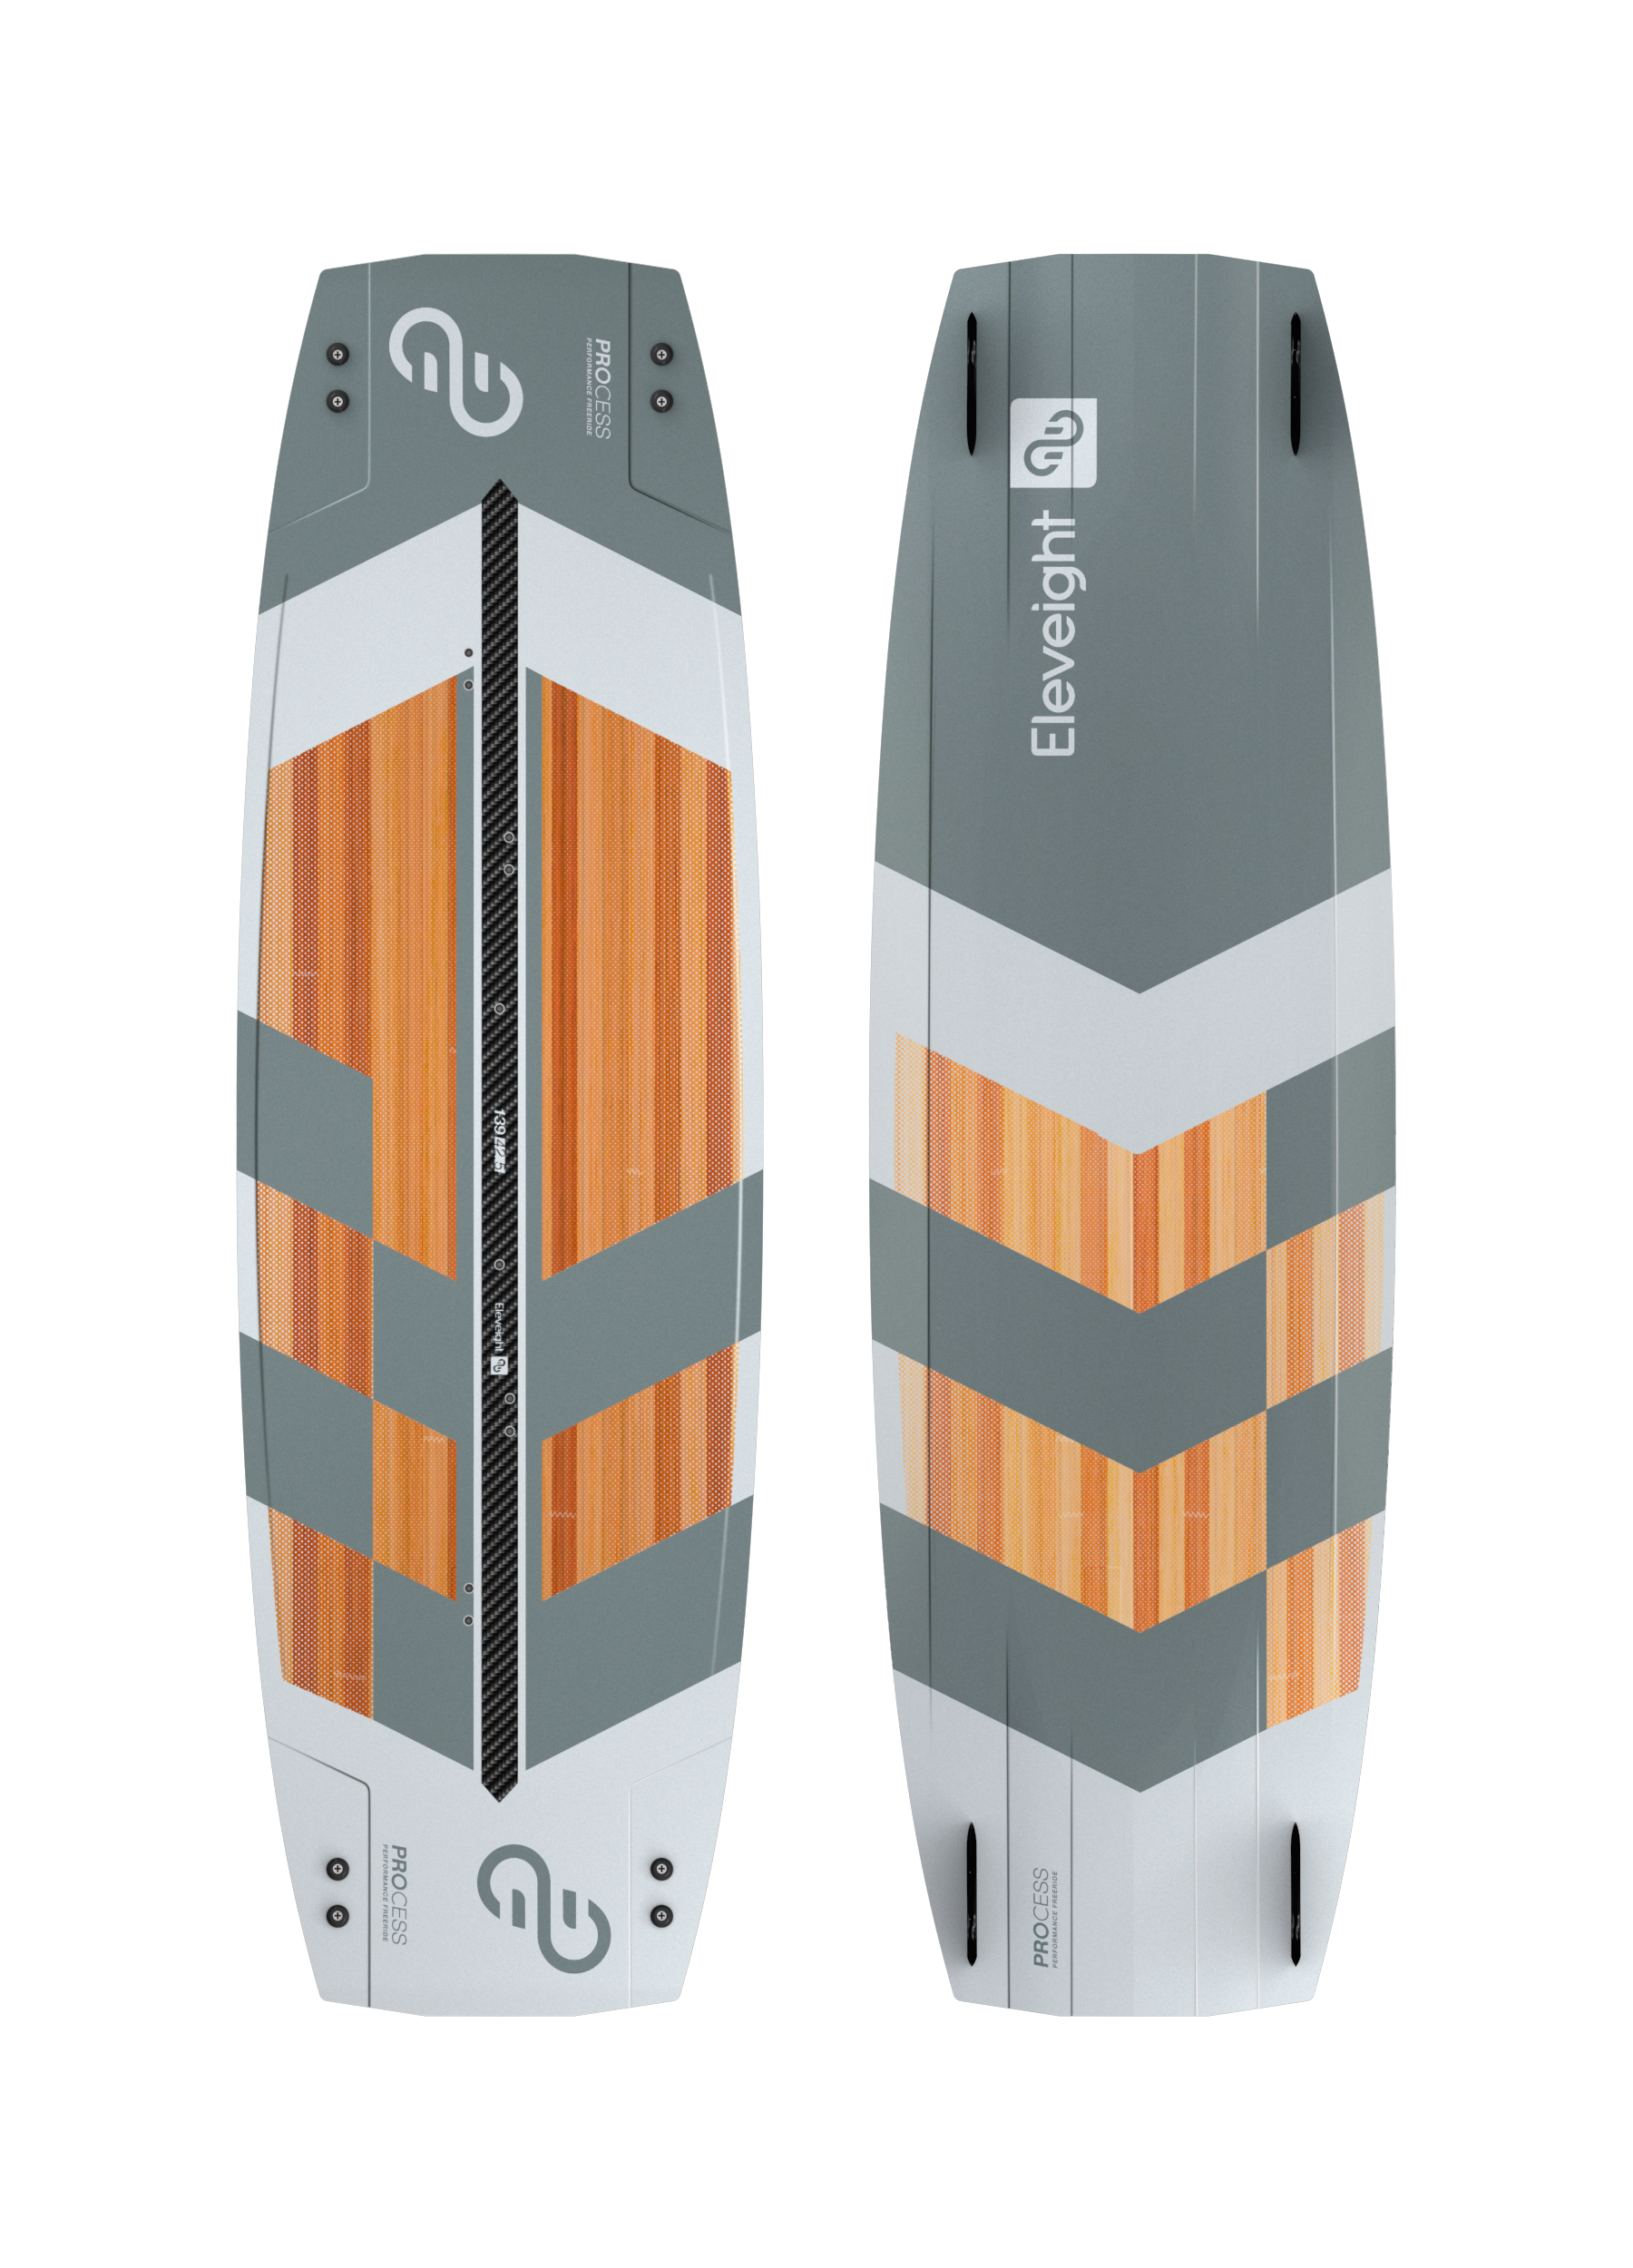 - PROCESSSizes 132x39.5, 135x41, 139x42.5, 144x44PERFORMANCE FEATURESTwin tip for highest freeride performanceLightweight paulownia wood core with well-balanced flex pattern50mm Carbon Stringer reinforcement for smooth landings and superior carvingOptimized rocker line for early planing and dashing speedProgressive channel design provides superb grip and controlImplementation of snowboard tech for highest performance and durabilityUltra-durable top sheet with UV resistanceHigh-quality pads and straps and 45 mm G10 fins come included$859.00